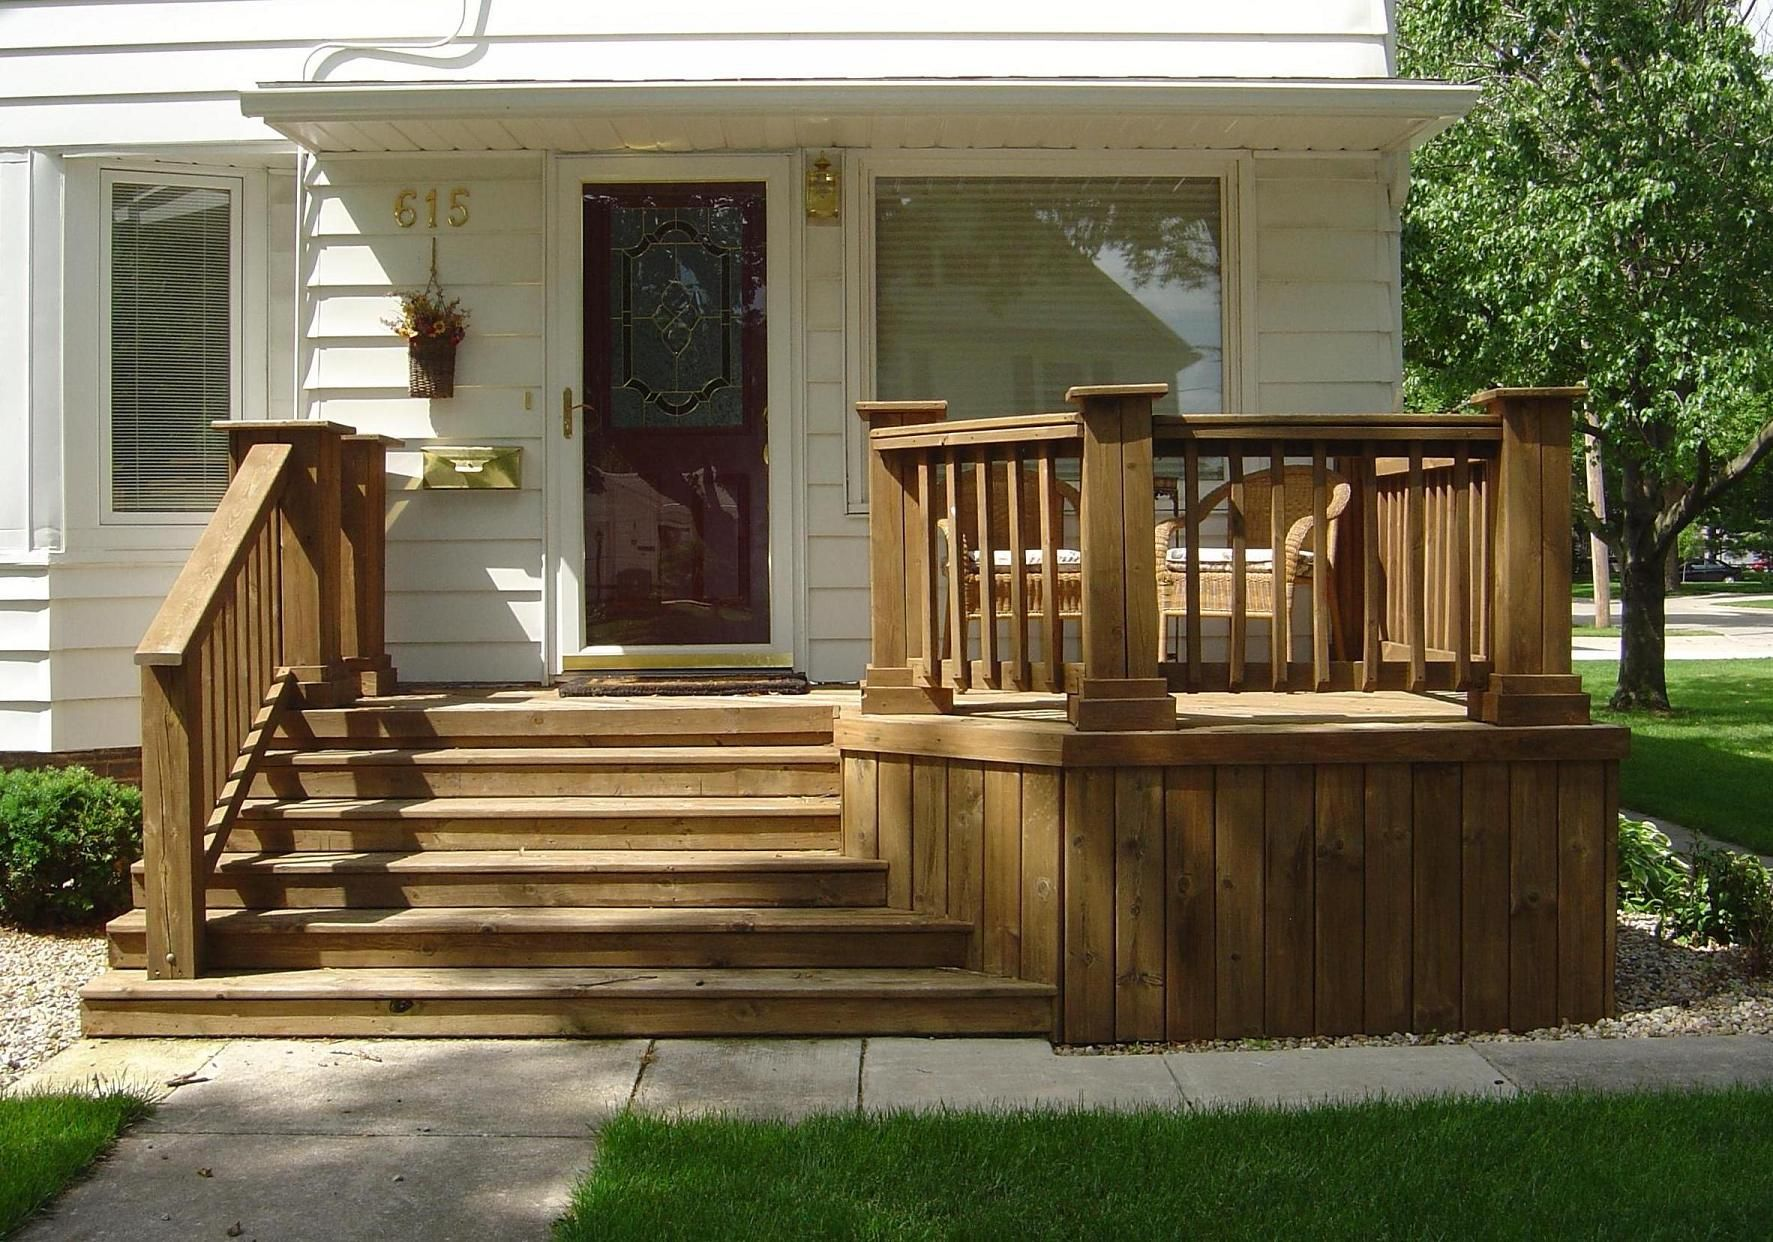 Porch skirting google search front porch steps front stairs front porch design